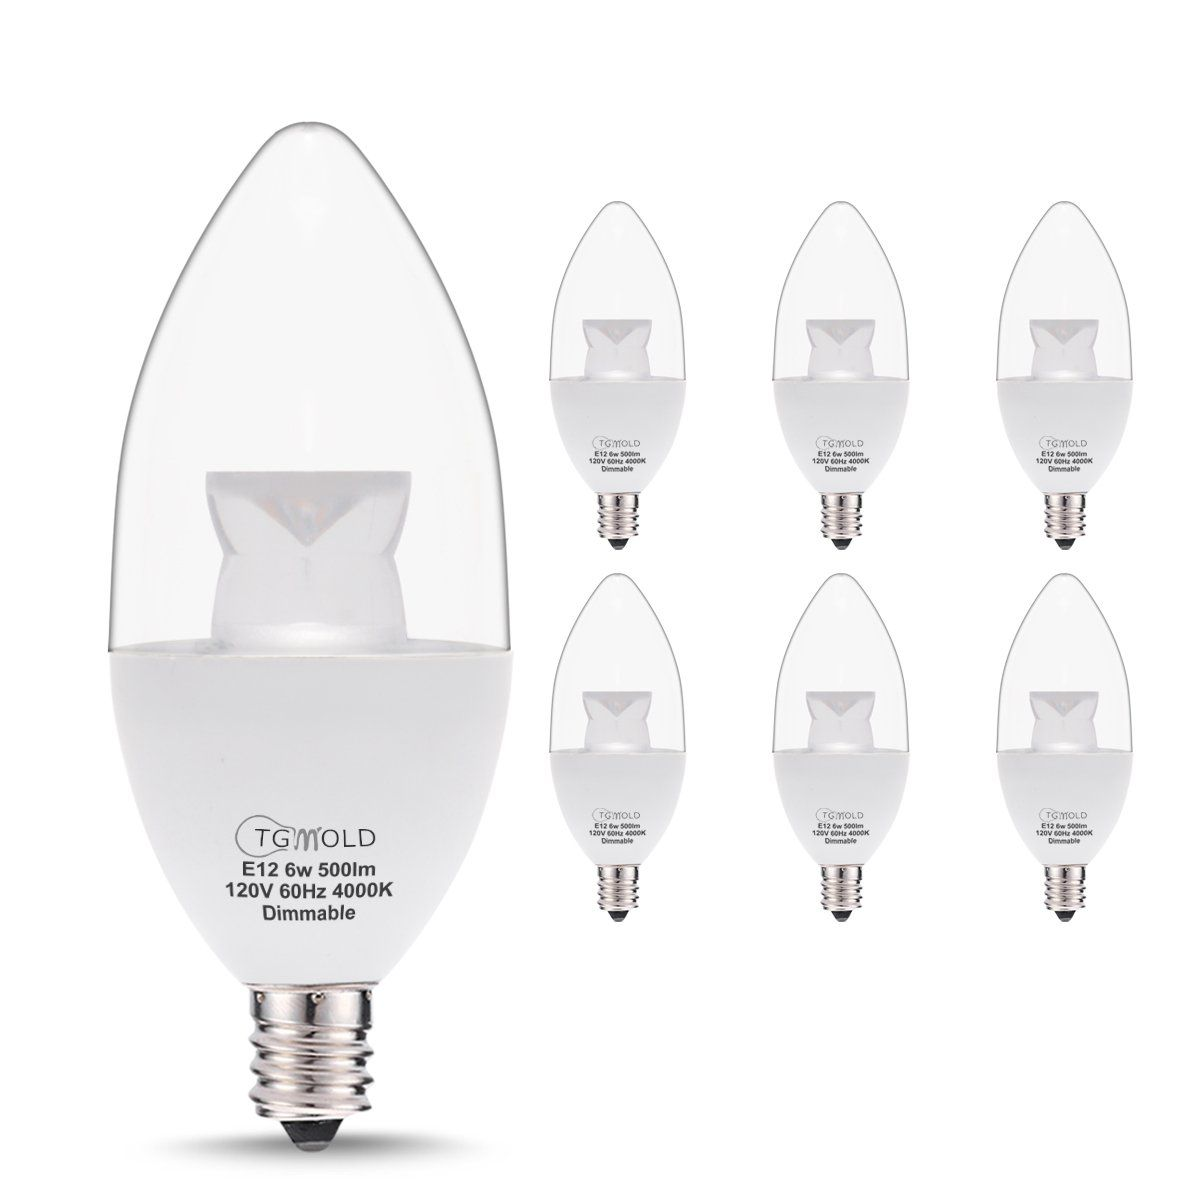 Tgmold candelabra led bulb dimmable 60w equivalent daylight 4000k tgmold candelabra led bulb dimmable 60w equivalent daylight 4000k led light bulbs candelabra base arubaitofo Gallery